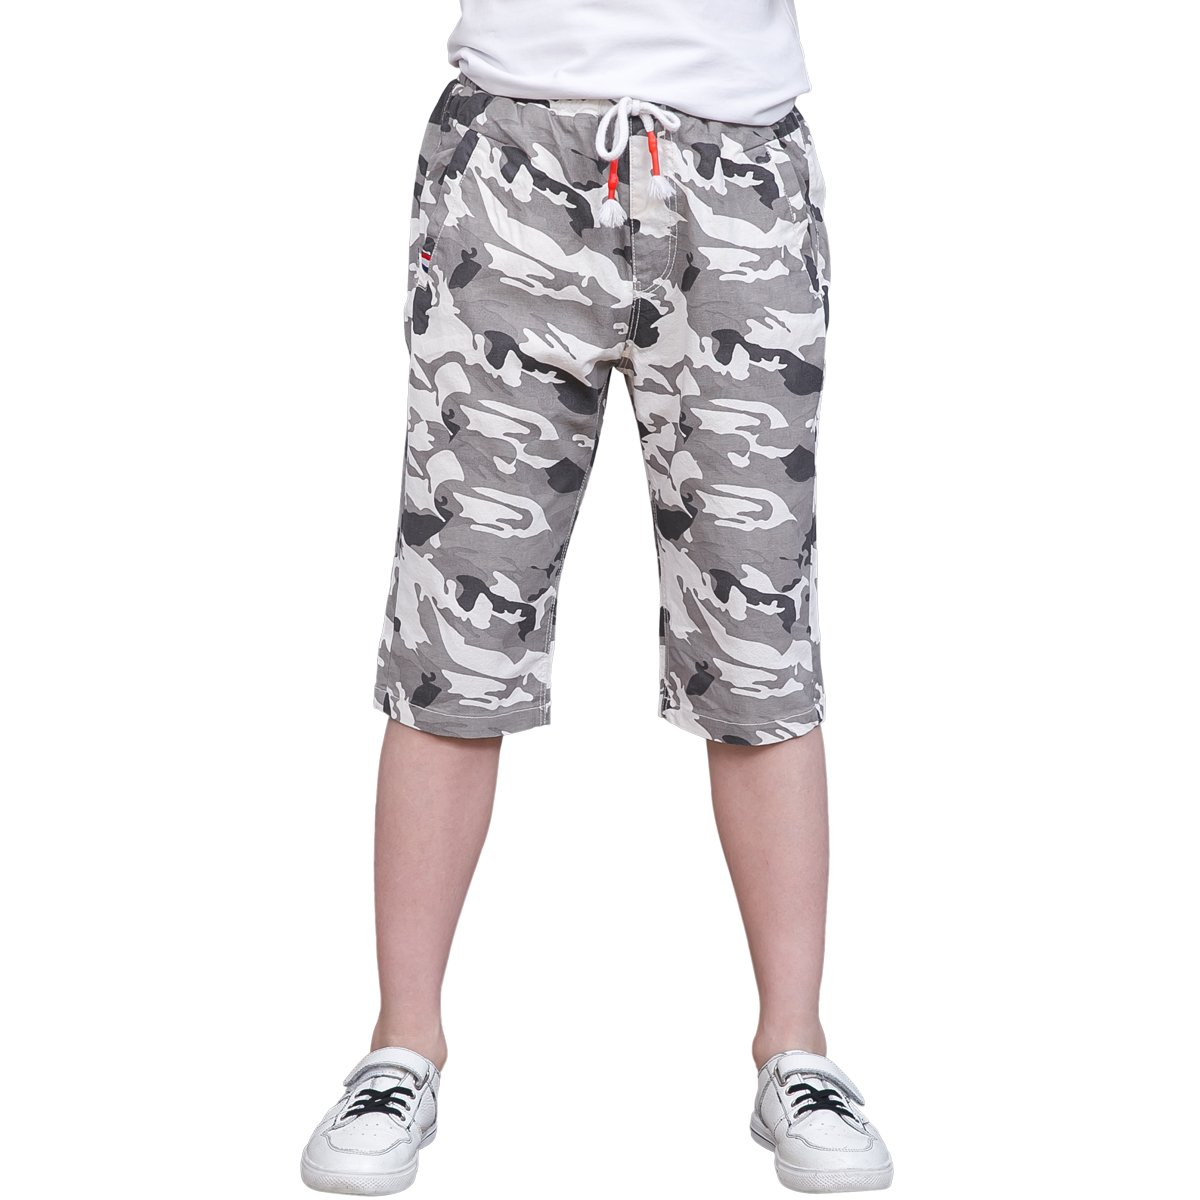 CNMUDONSI Boys Camouflage Short Trousers Summer 2017 Kids Clothes Pants (12T, M718-Gray)